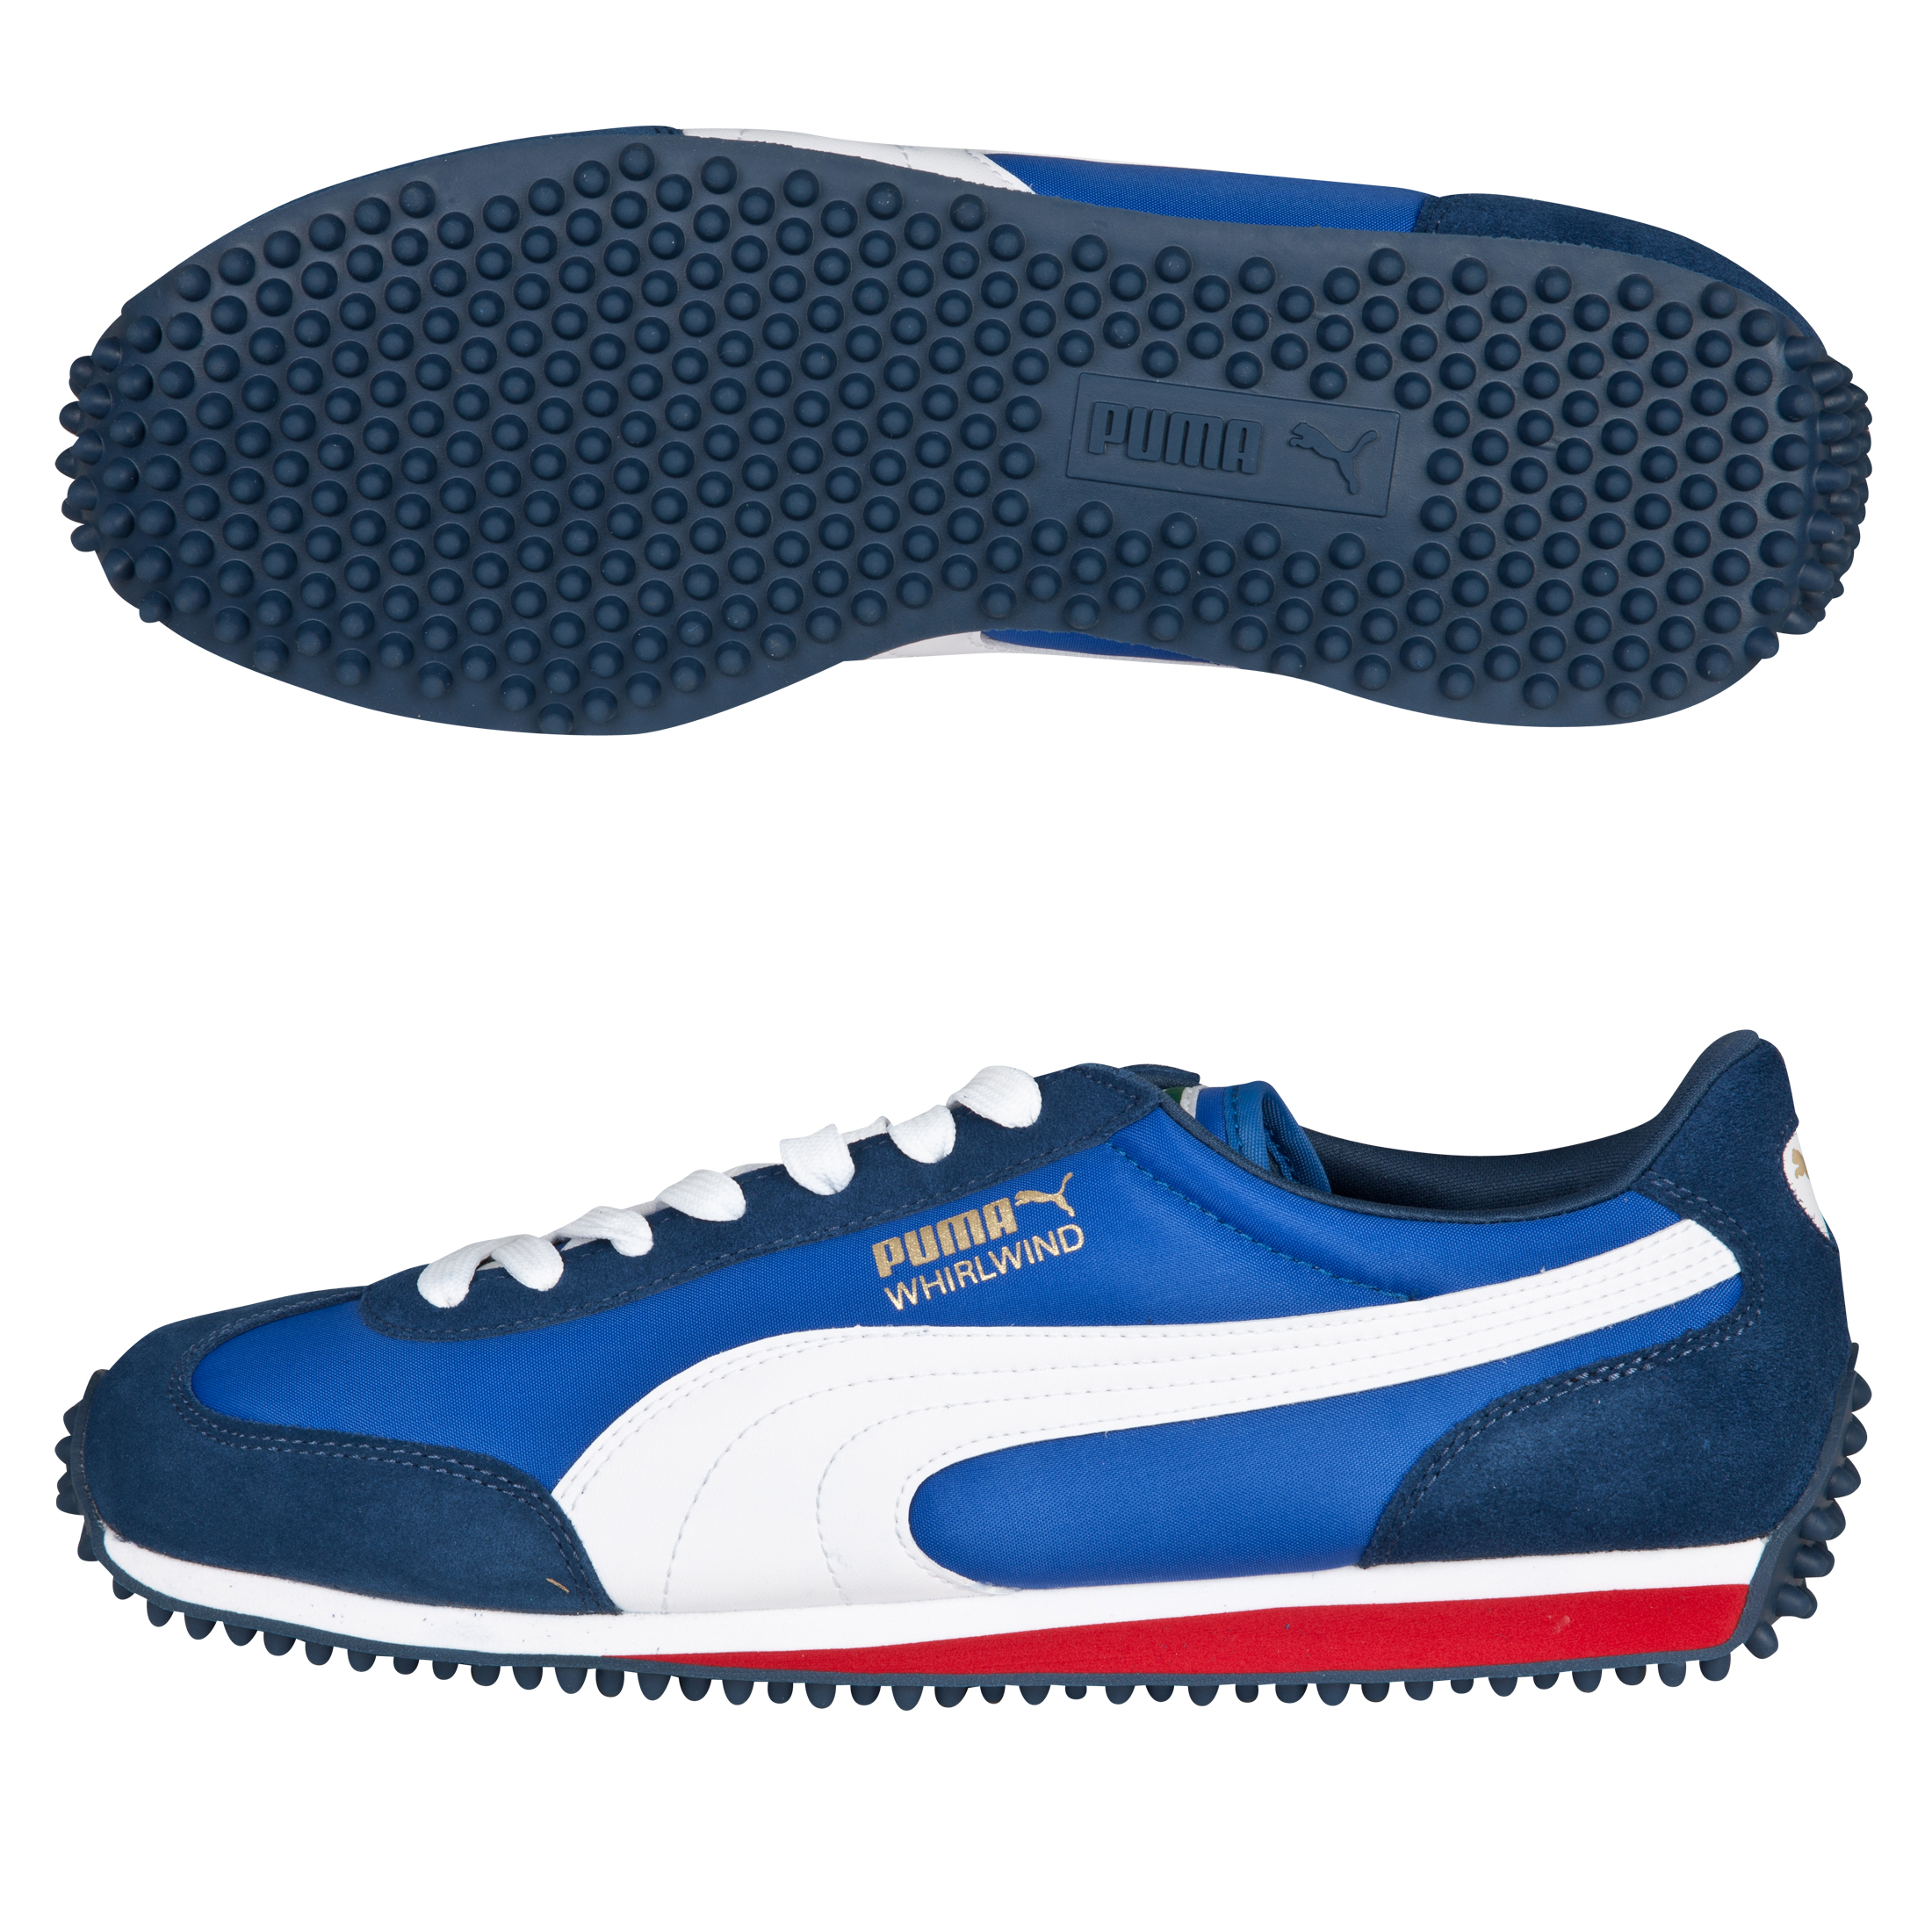 Puma Whirlwind Classic Trainers - Dark Denim/White/Puma Royal